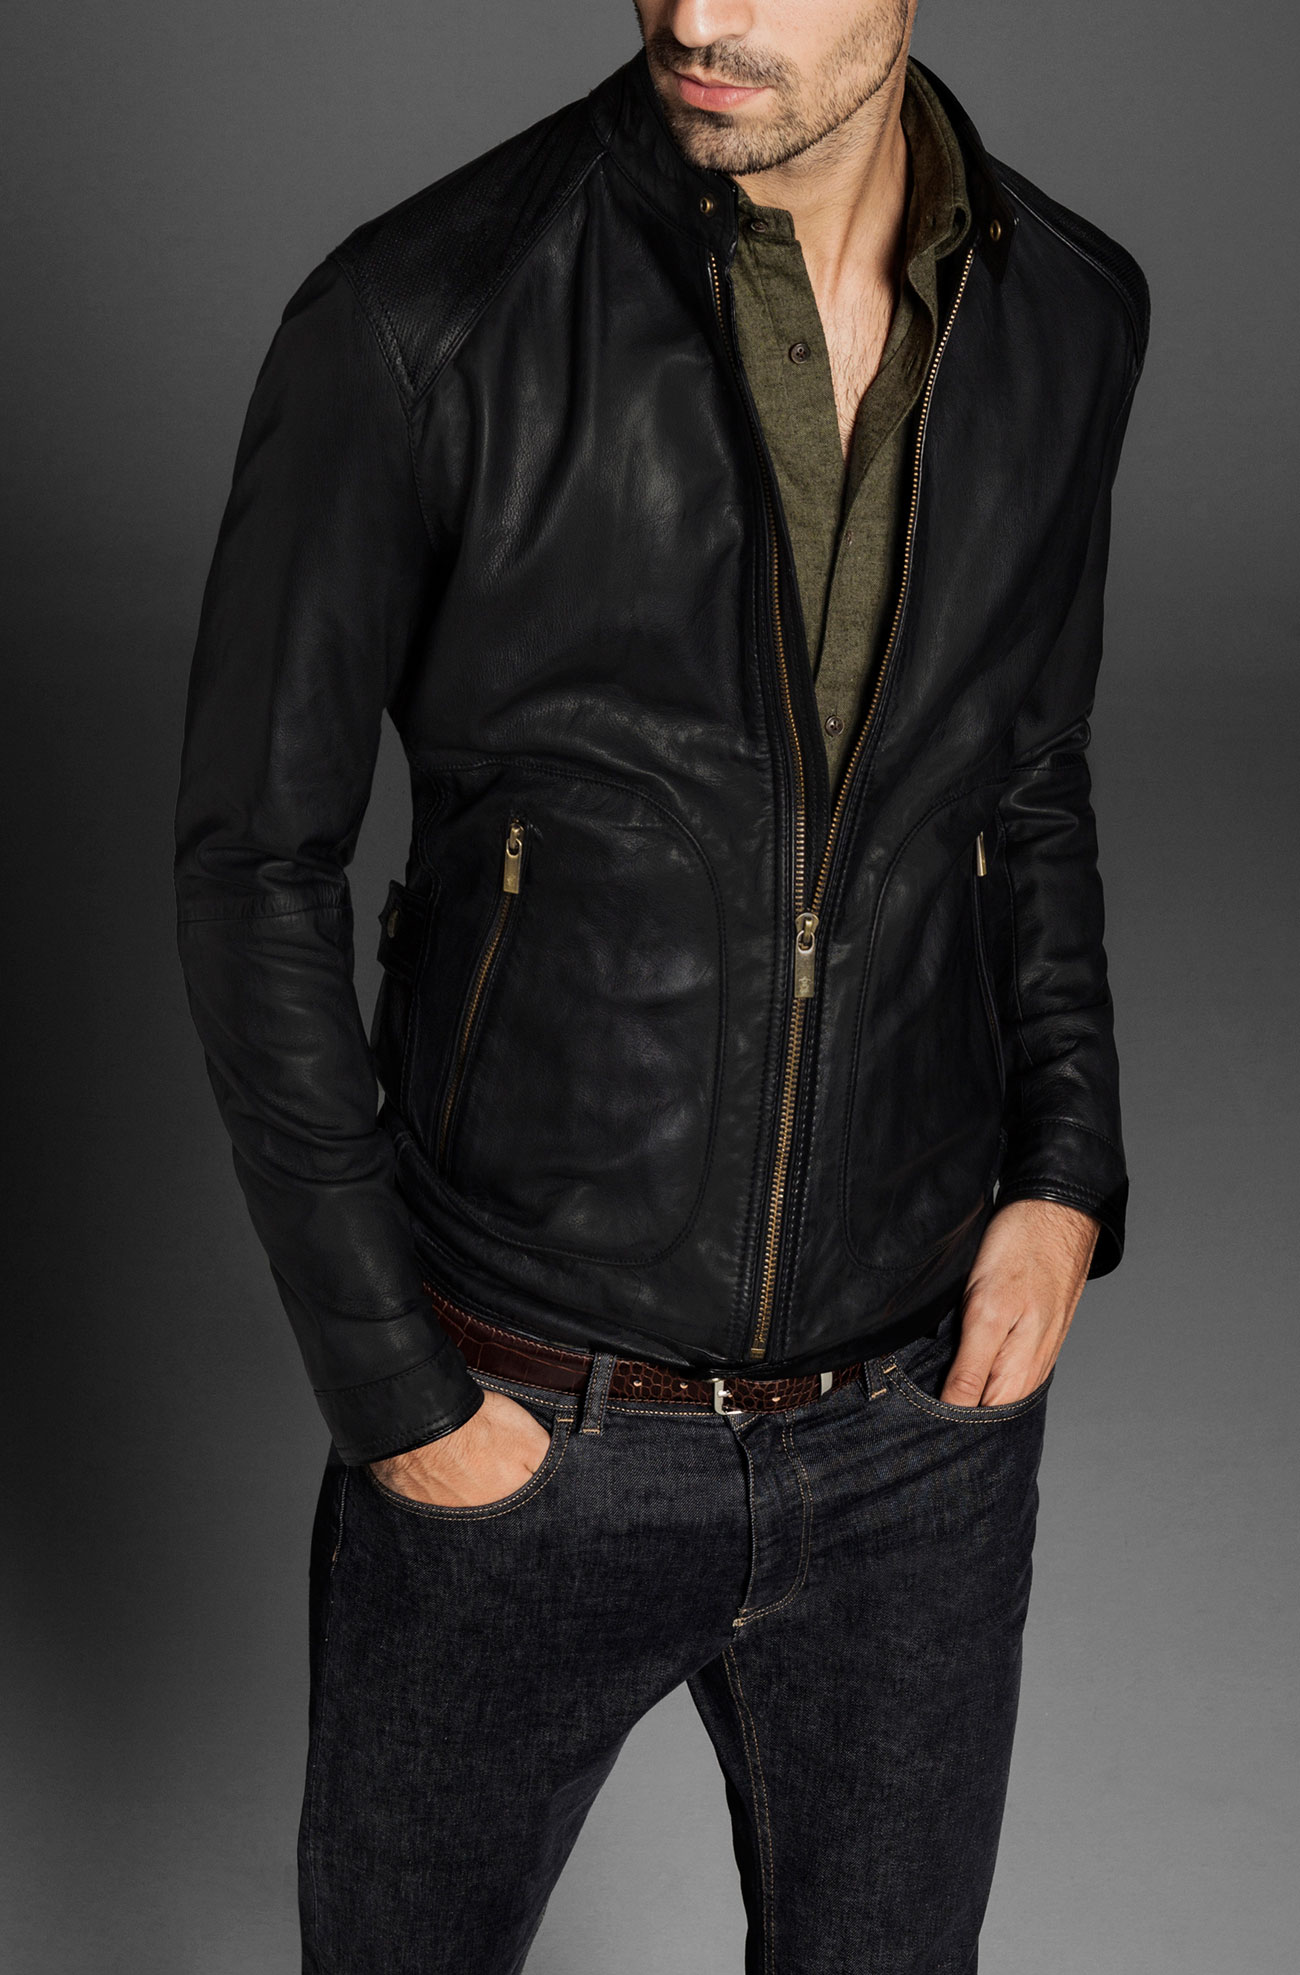 Are leather jackets in fashion for men 35